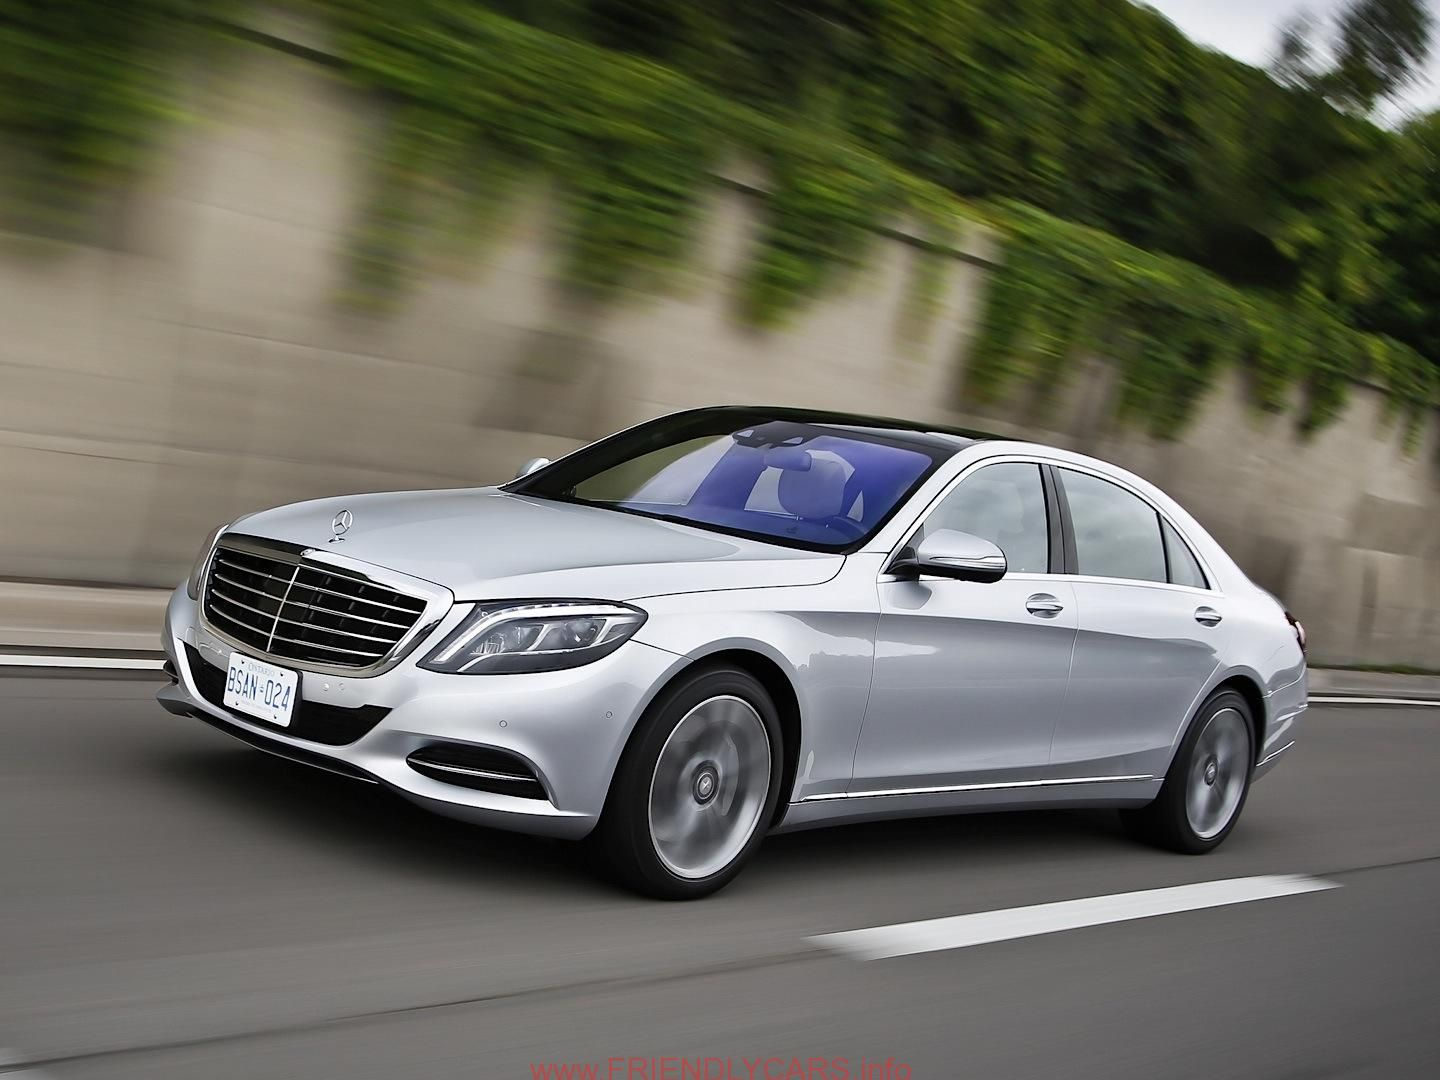 Nice mercedes 2014 s class price car images hd 2014 mercedes benz s class gets pricing